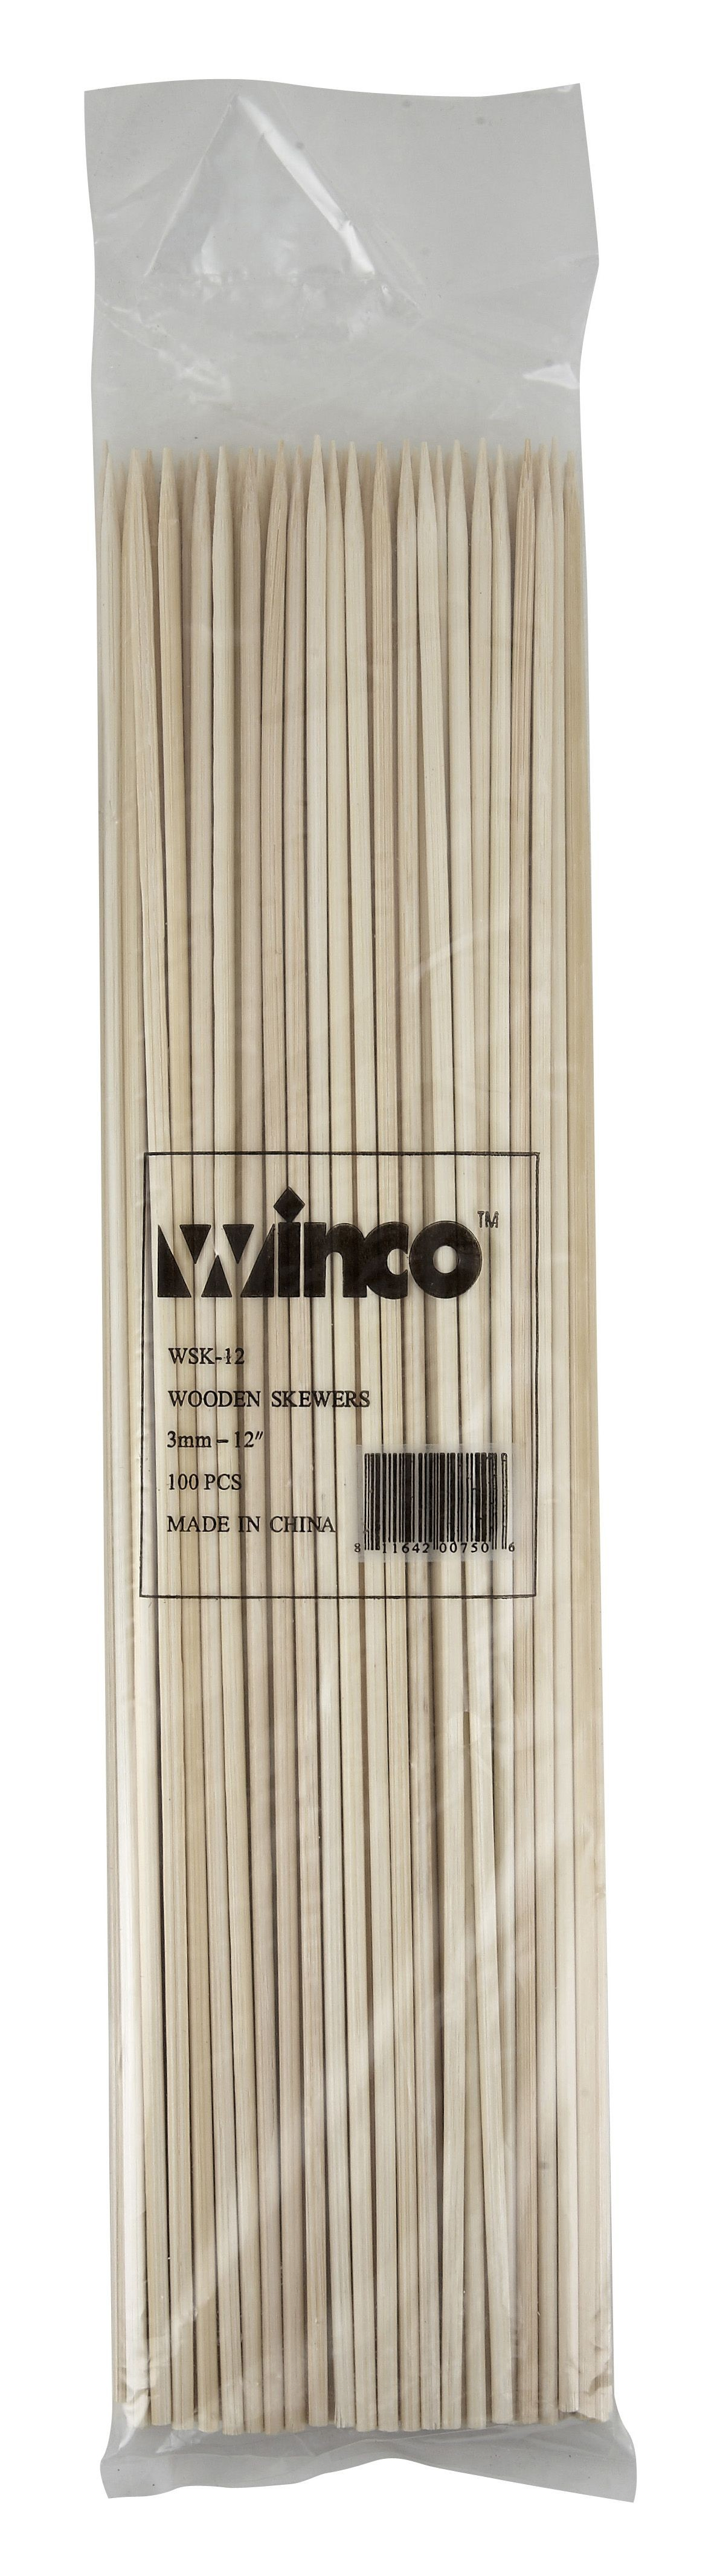 Winco WSK-12 Bamboo Skewers 12""